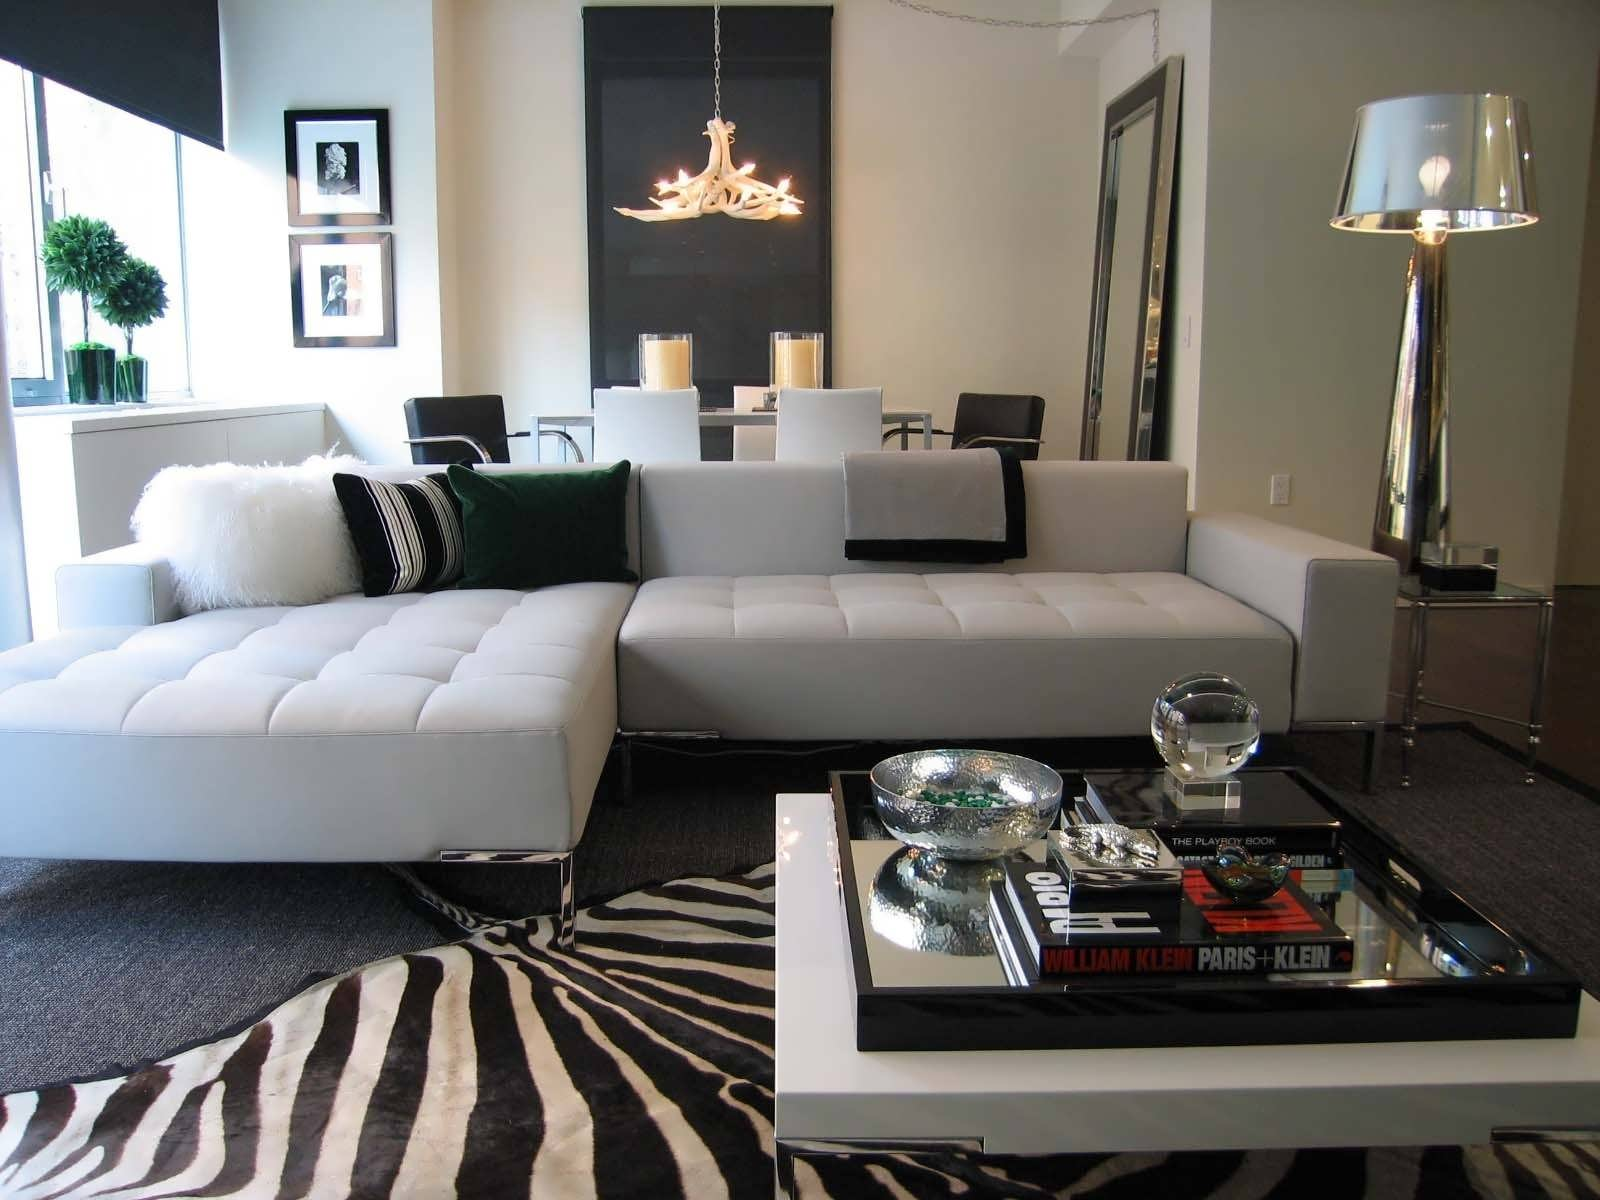 zebra print rug in living room 7 simple animal print rugs for living room HJZNOBZ